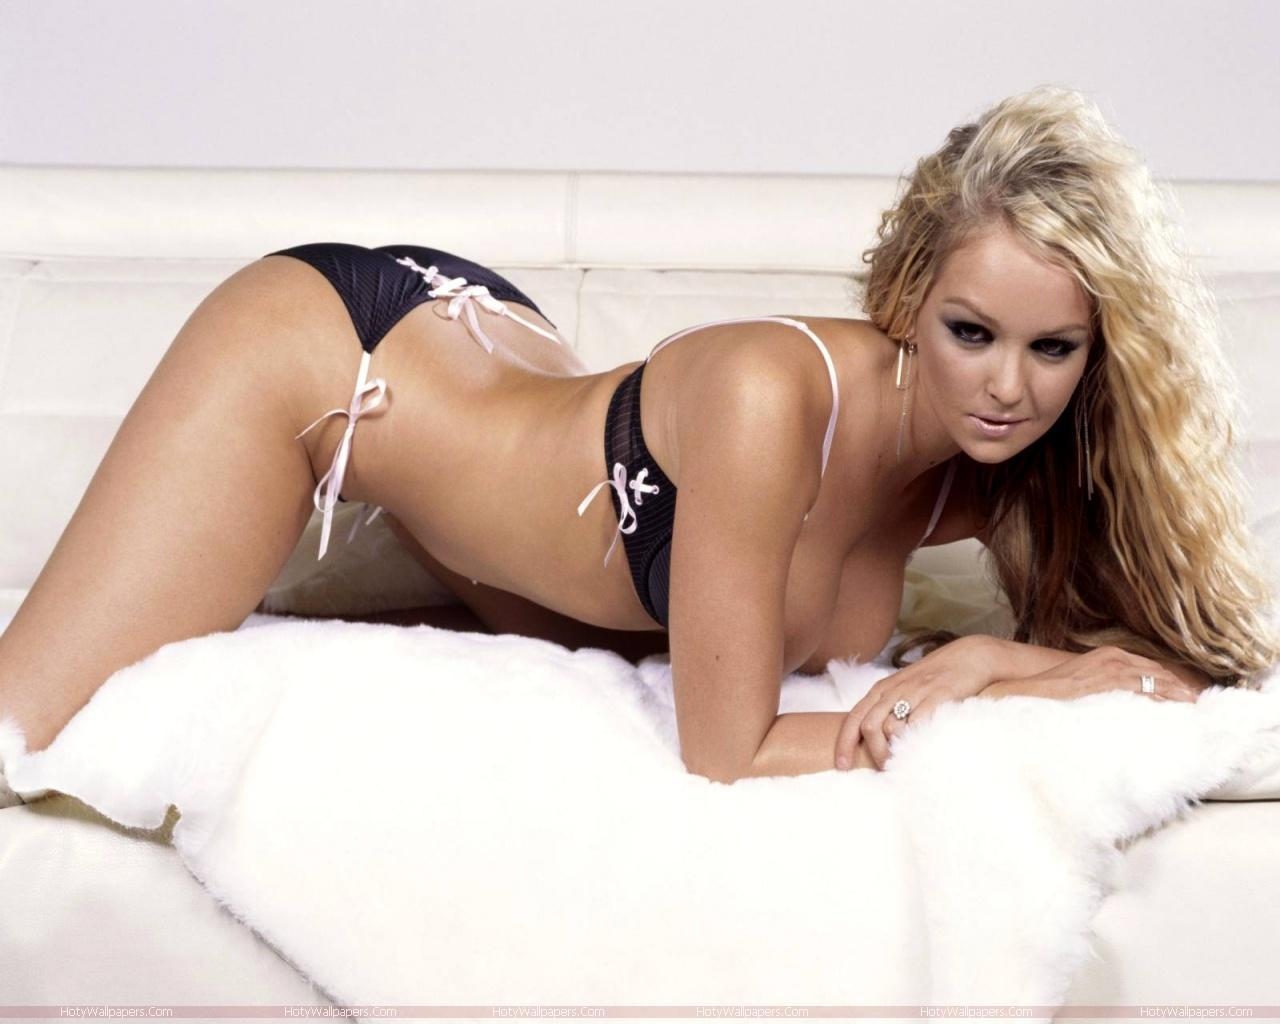 http://1.bp.blogspot.com/-jVB5FFUySlQ/TmeIRLODsxI/AAAAAAAAKkw/jTeUPejYVV8/s1600/Jennifer_Ellison_hot-photo-shoot.jpg